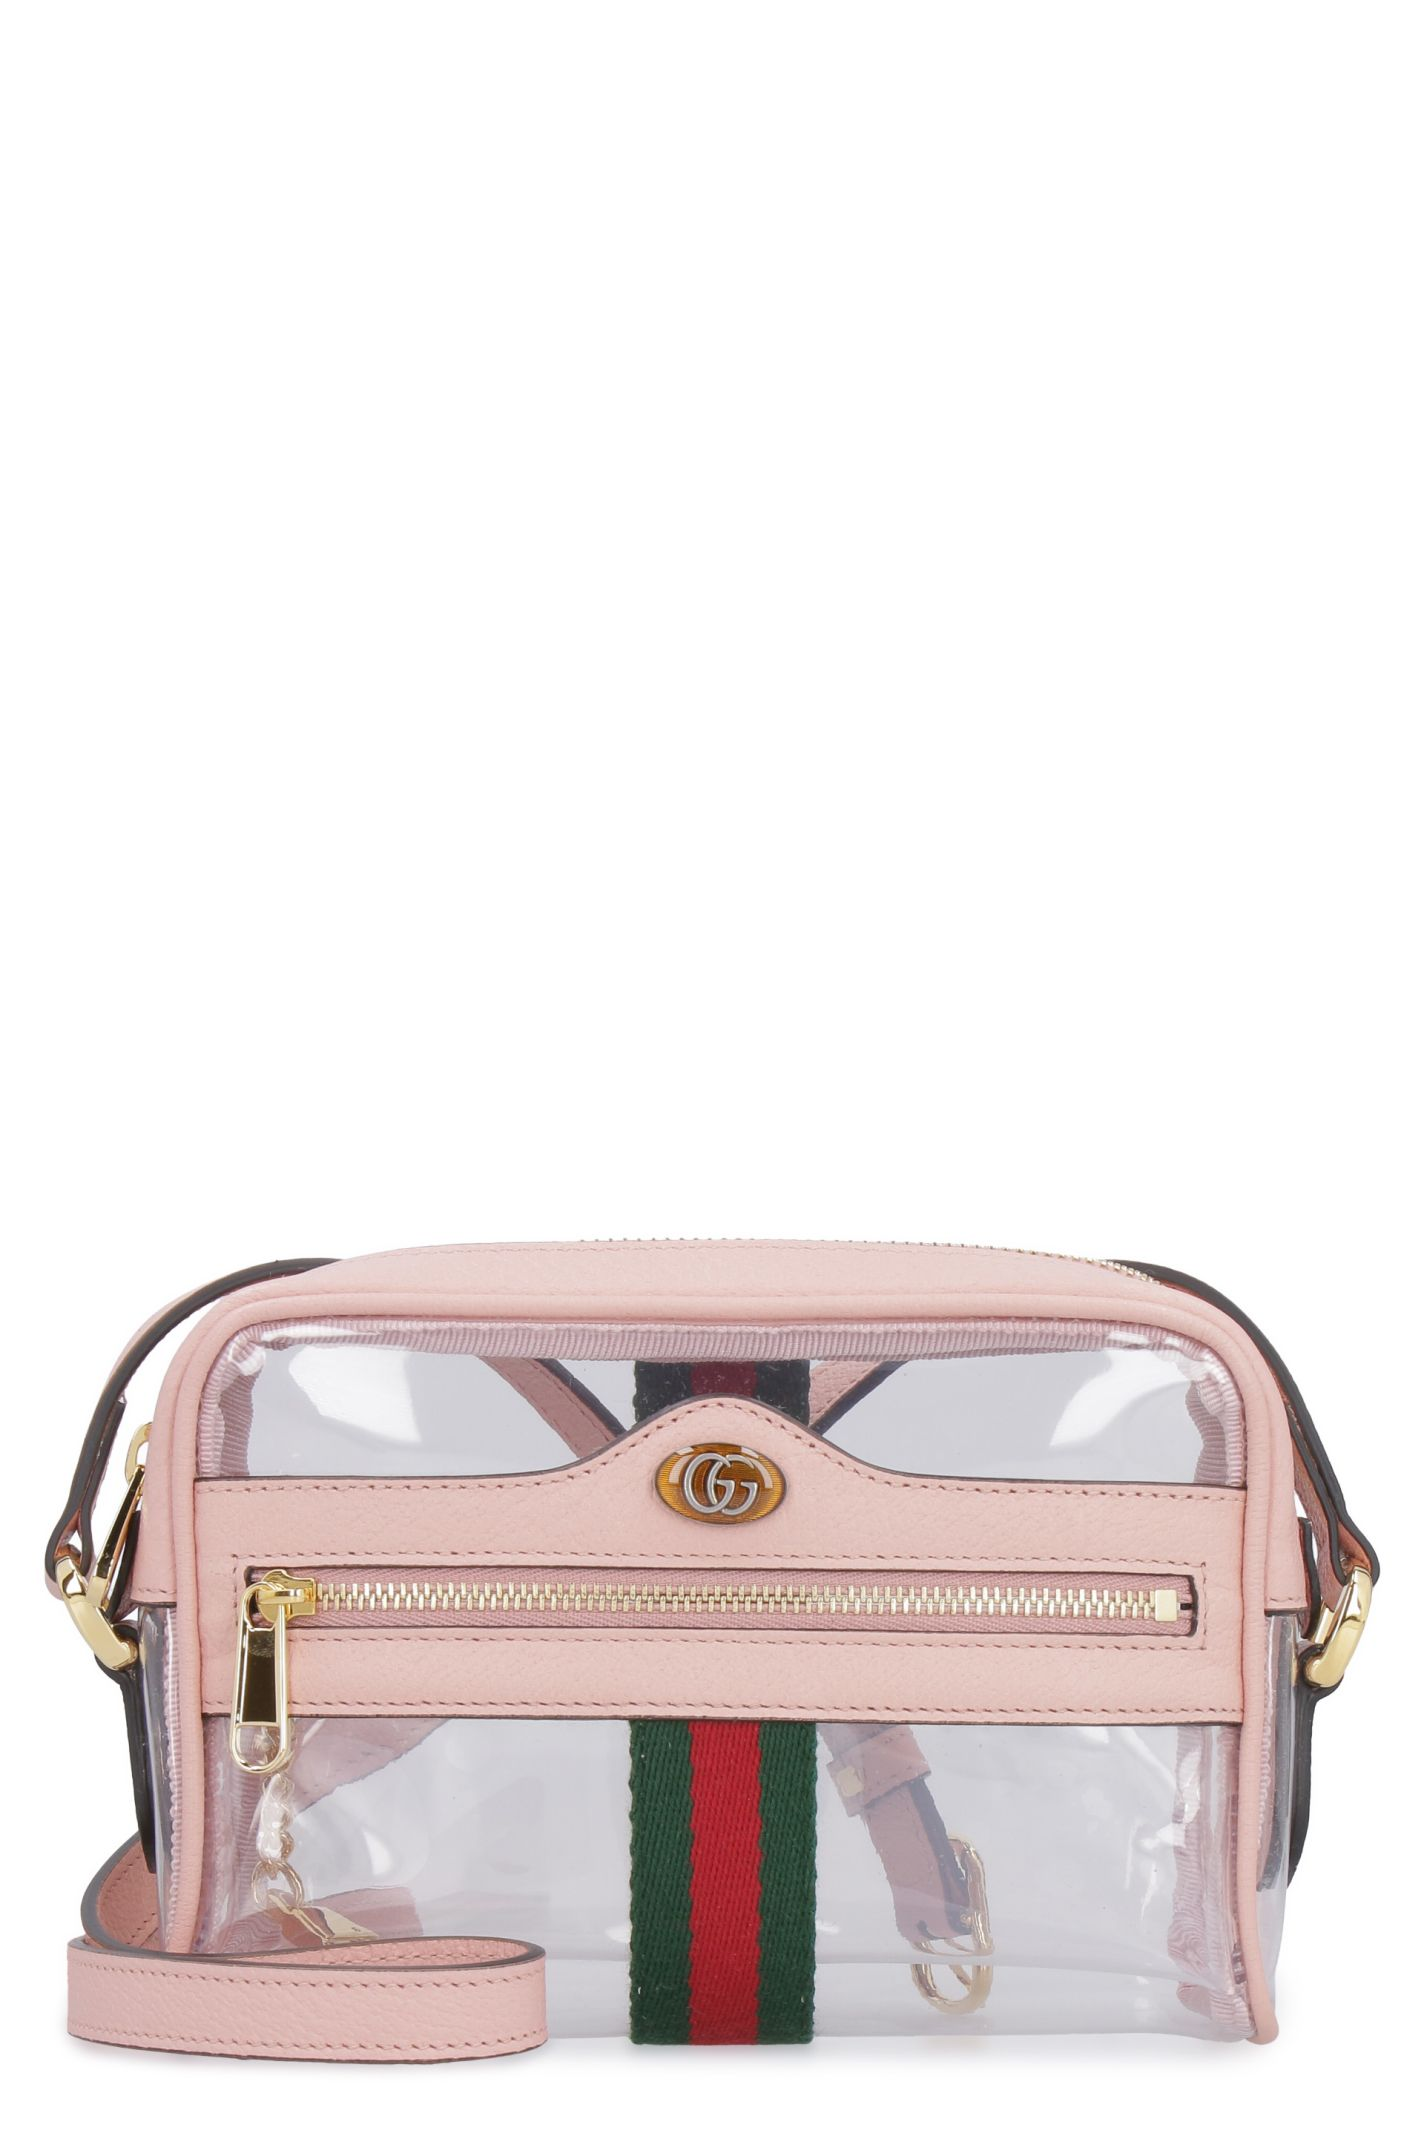 7fad01e60008 Gucci Gucci Ophidia Vinyl Shoulder Bag - Transparent - 10934742 ...